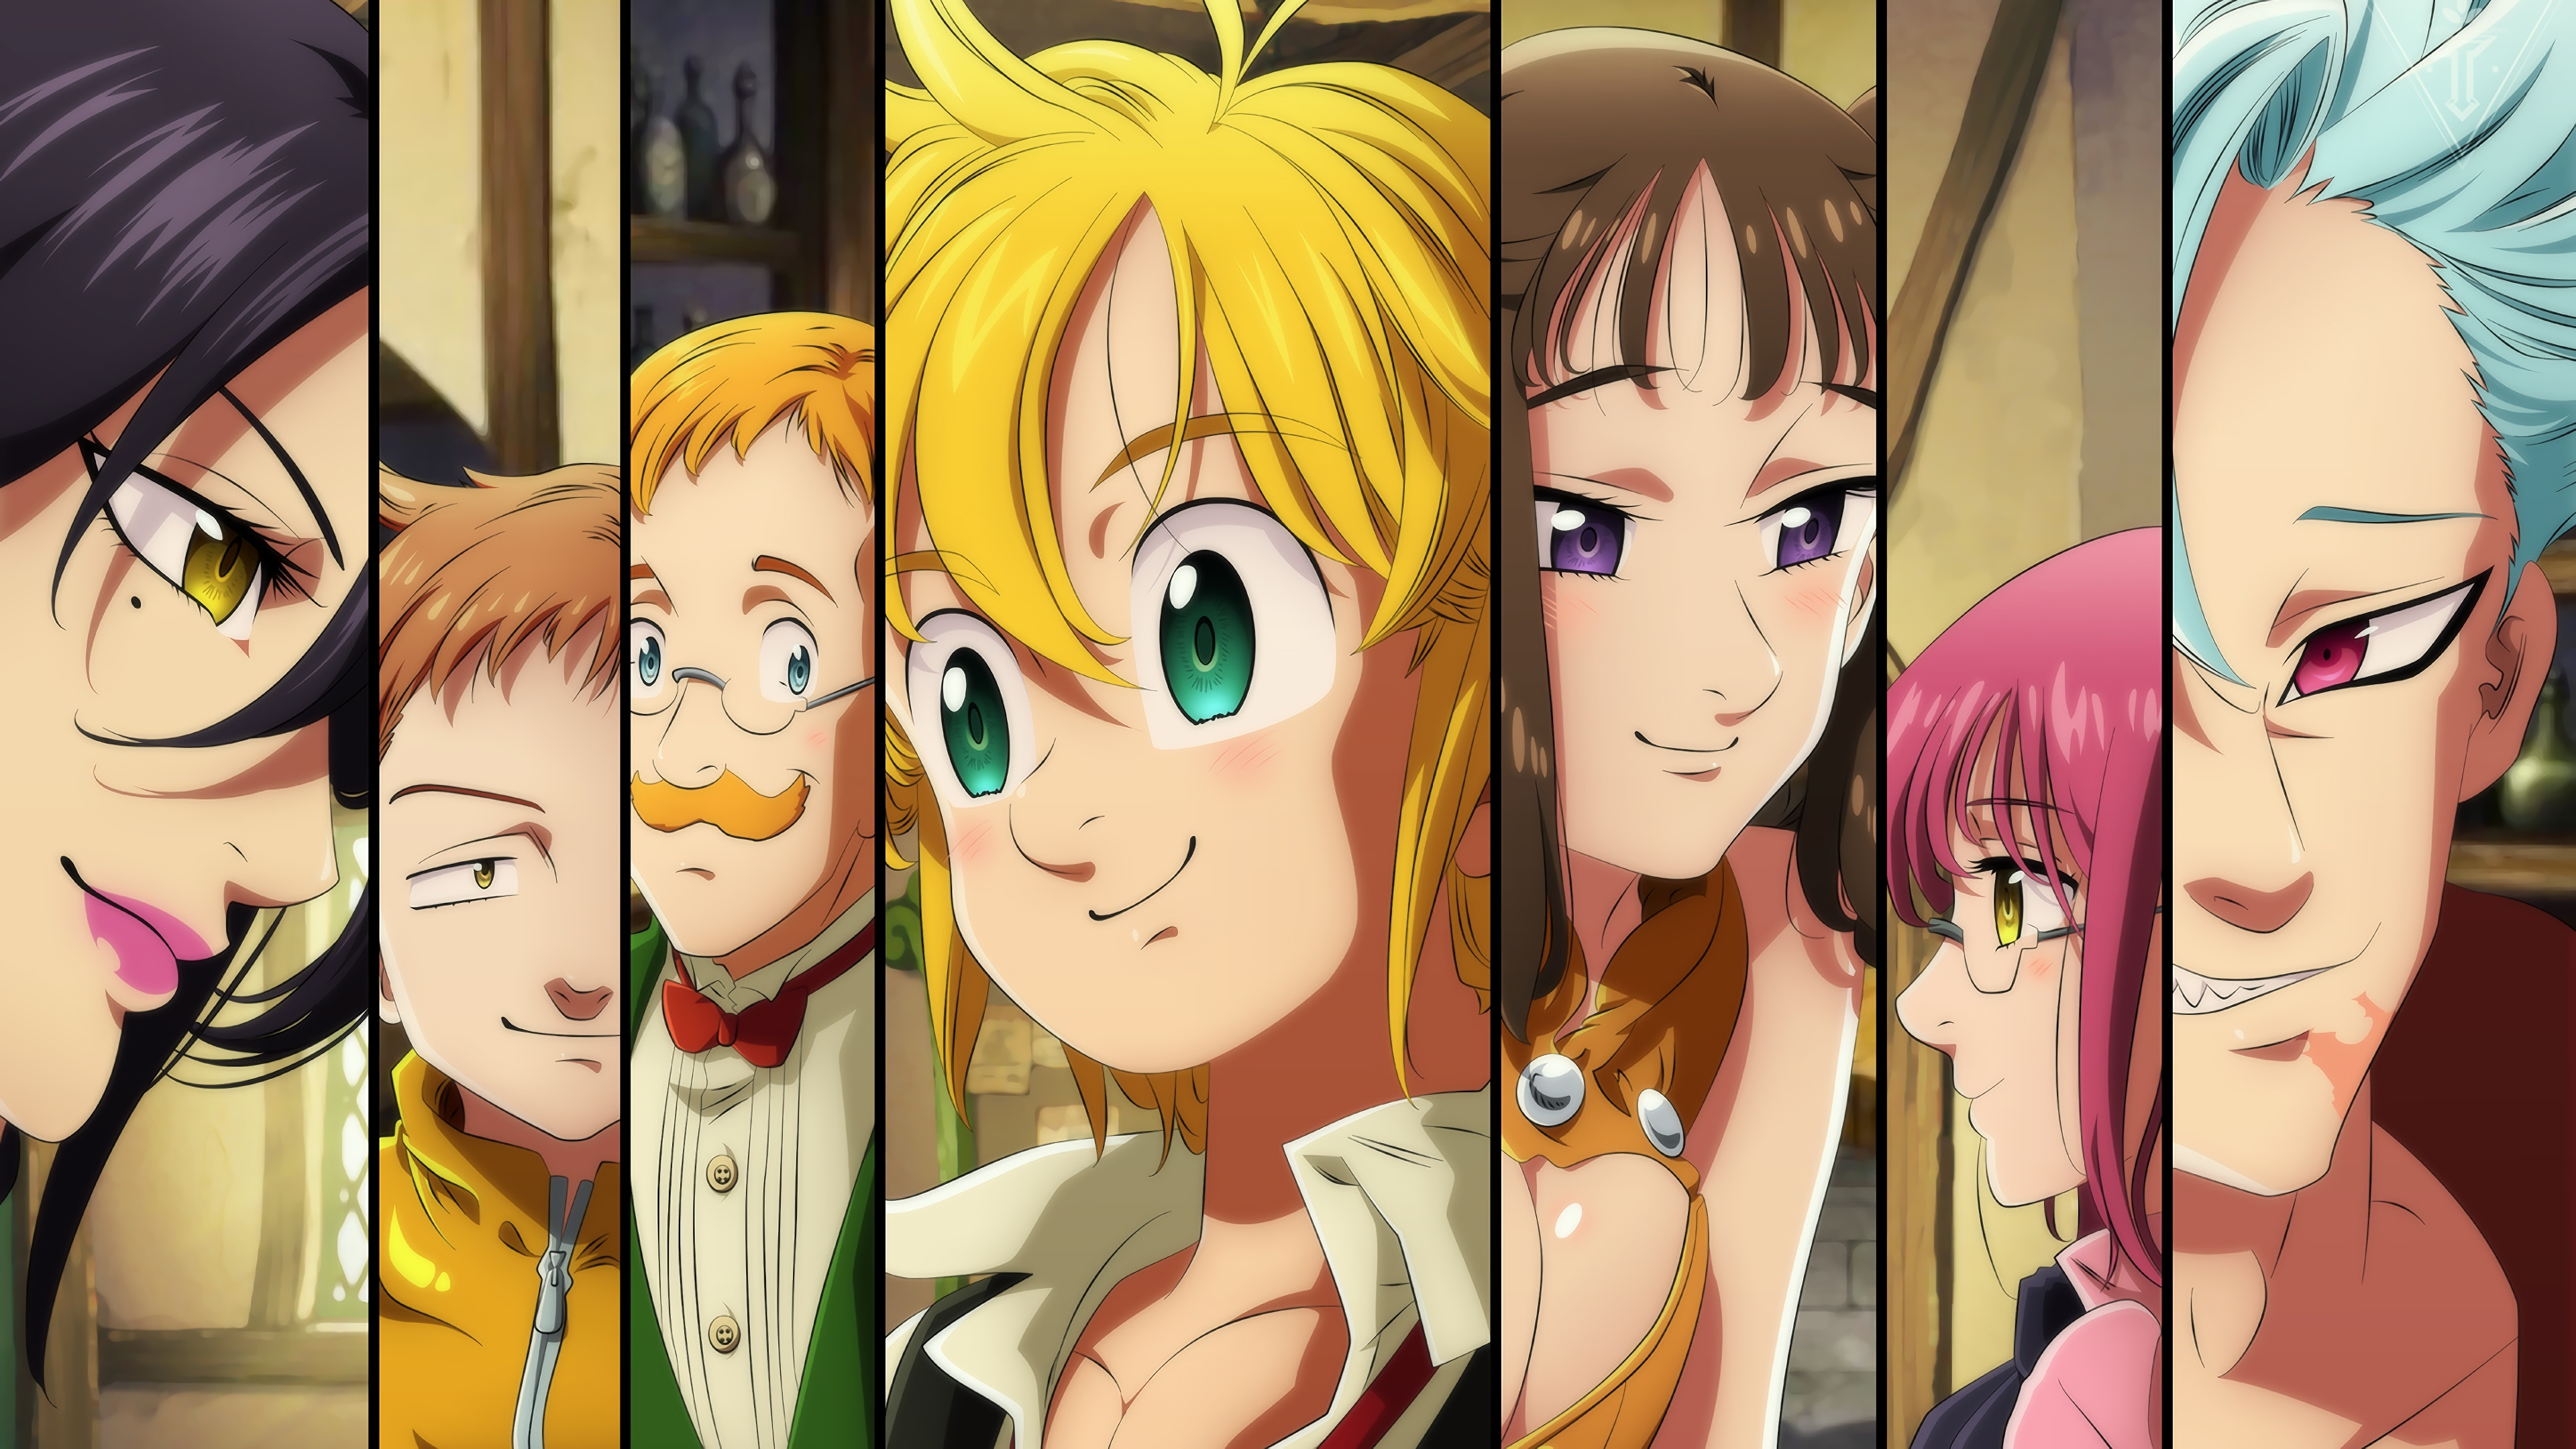 Free Download The Seven Deadly Sins 4k Ultra Hd Wallpaper